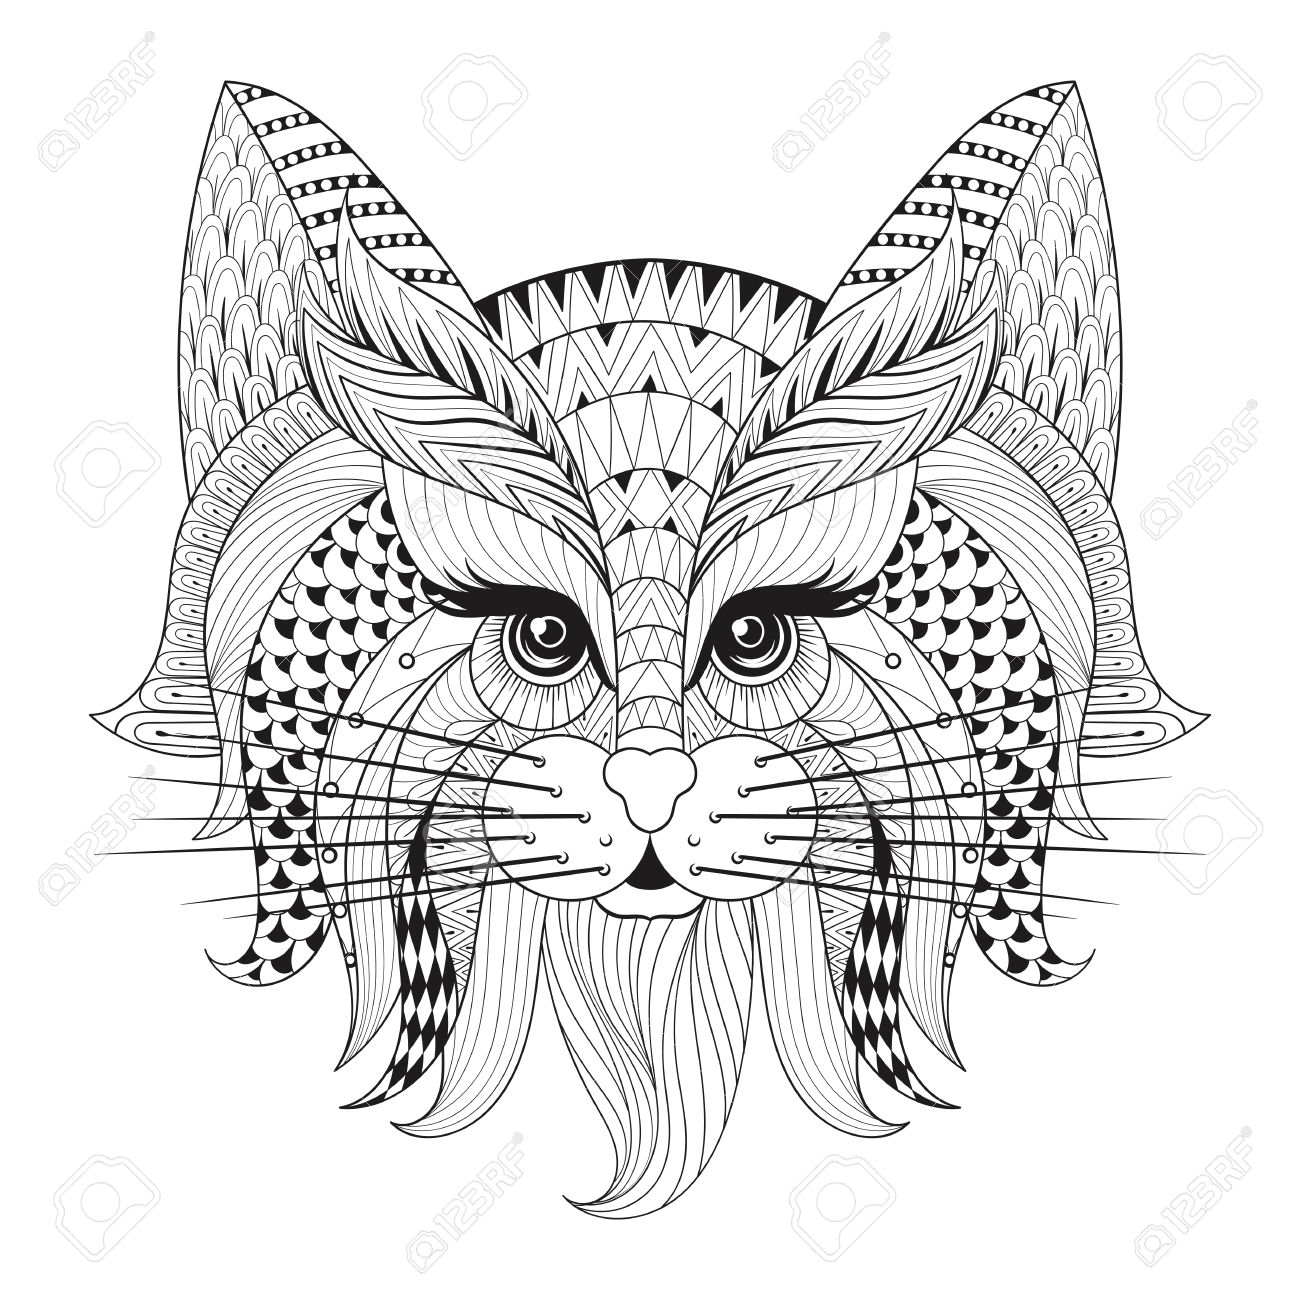 Good Vector   Zentangle Hand Drawn Cat Face For Adult Antistress Coloring Pages,  Post Card, T Shirt Print, Logo. Cat Illustration In Doodle Style, ...